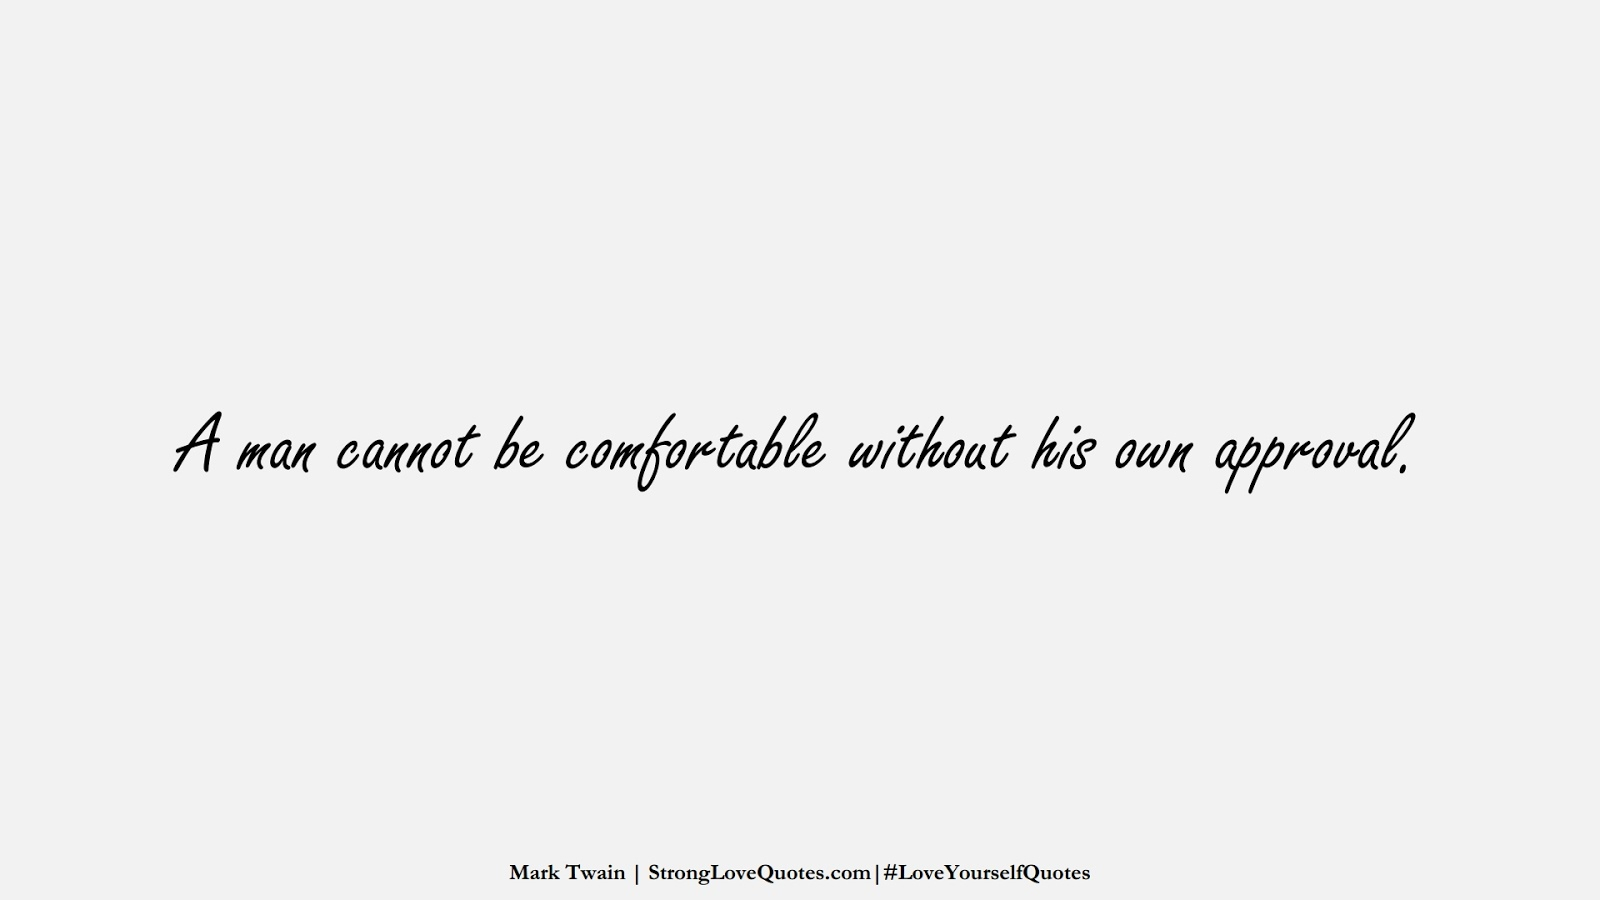 A man cannot be comfortable without his own approval. (Mark Twain);  #LoveYourselfQuotes